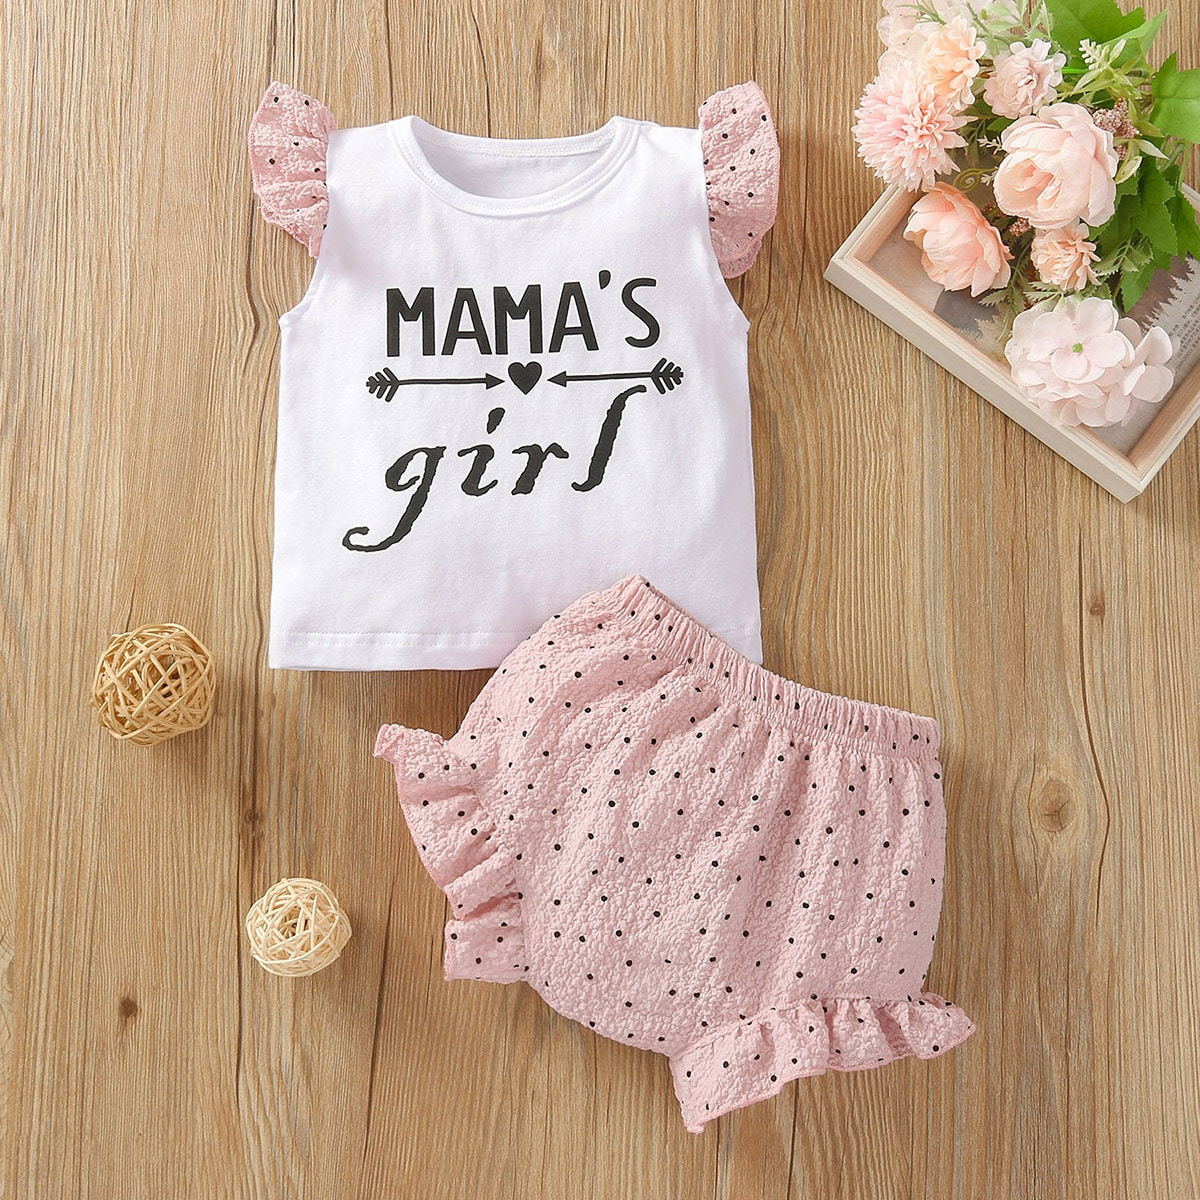 Baby Girl Letter Graphic Tee With Polka Dot Shorts